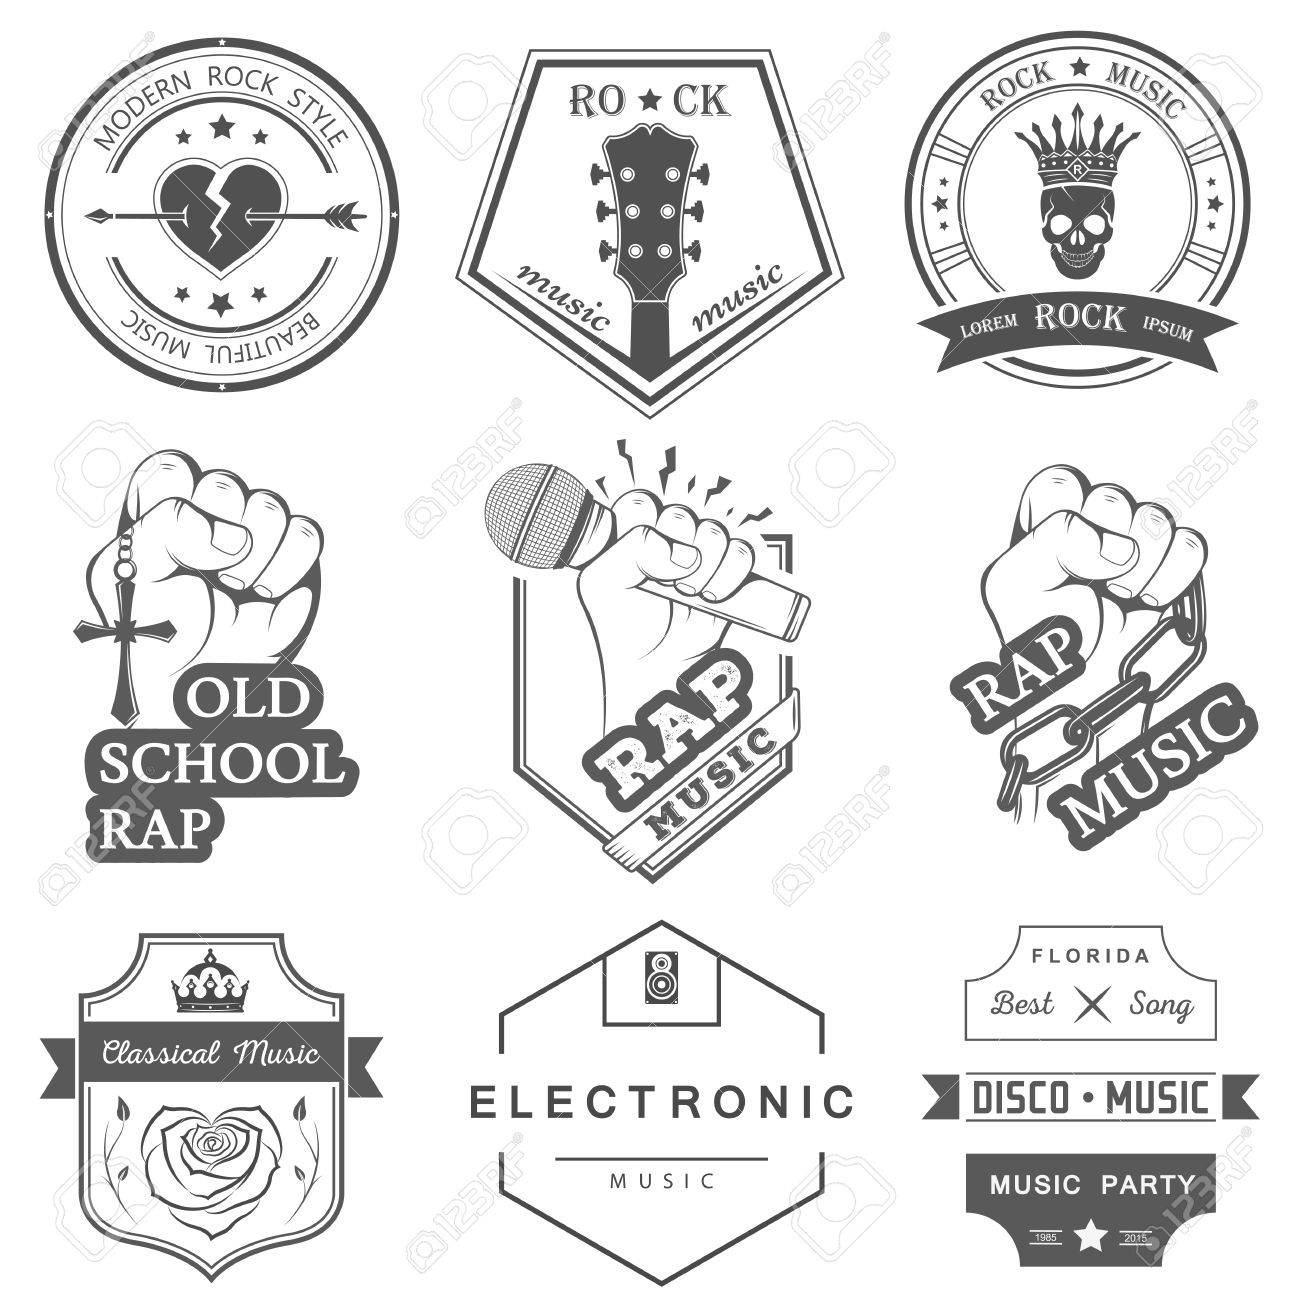 Set Of Vector Badges And Logos Of Rock Music And Rap Classical Music